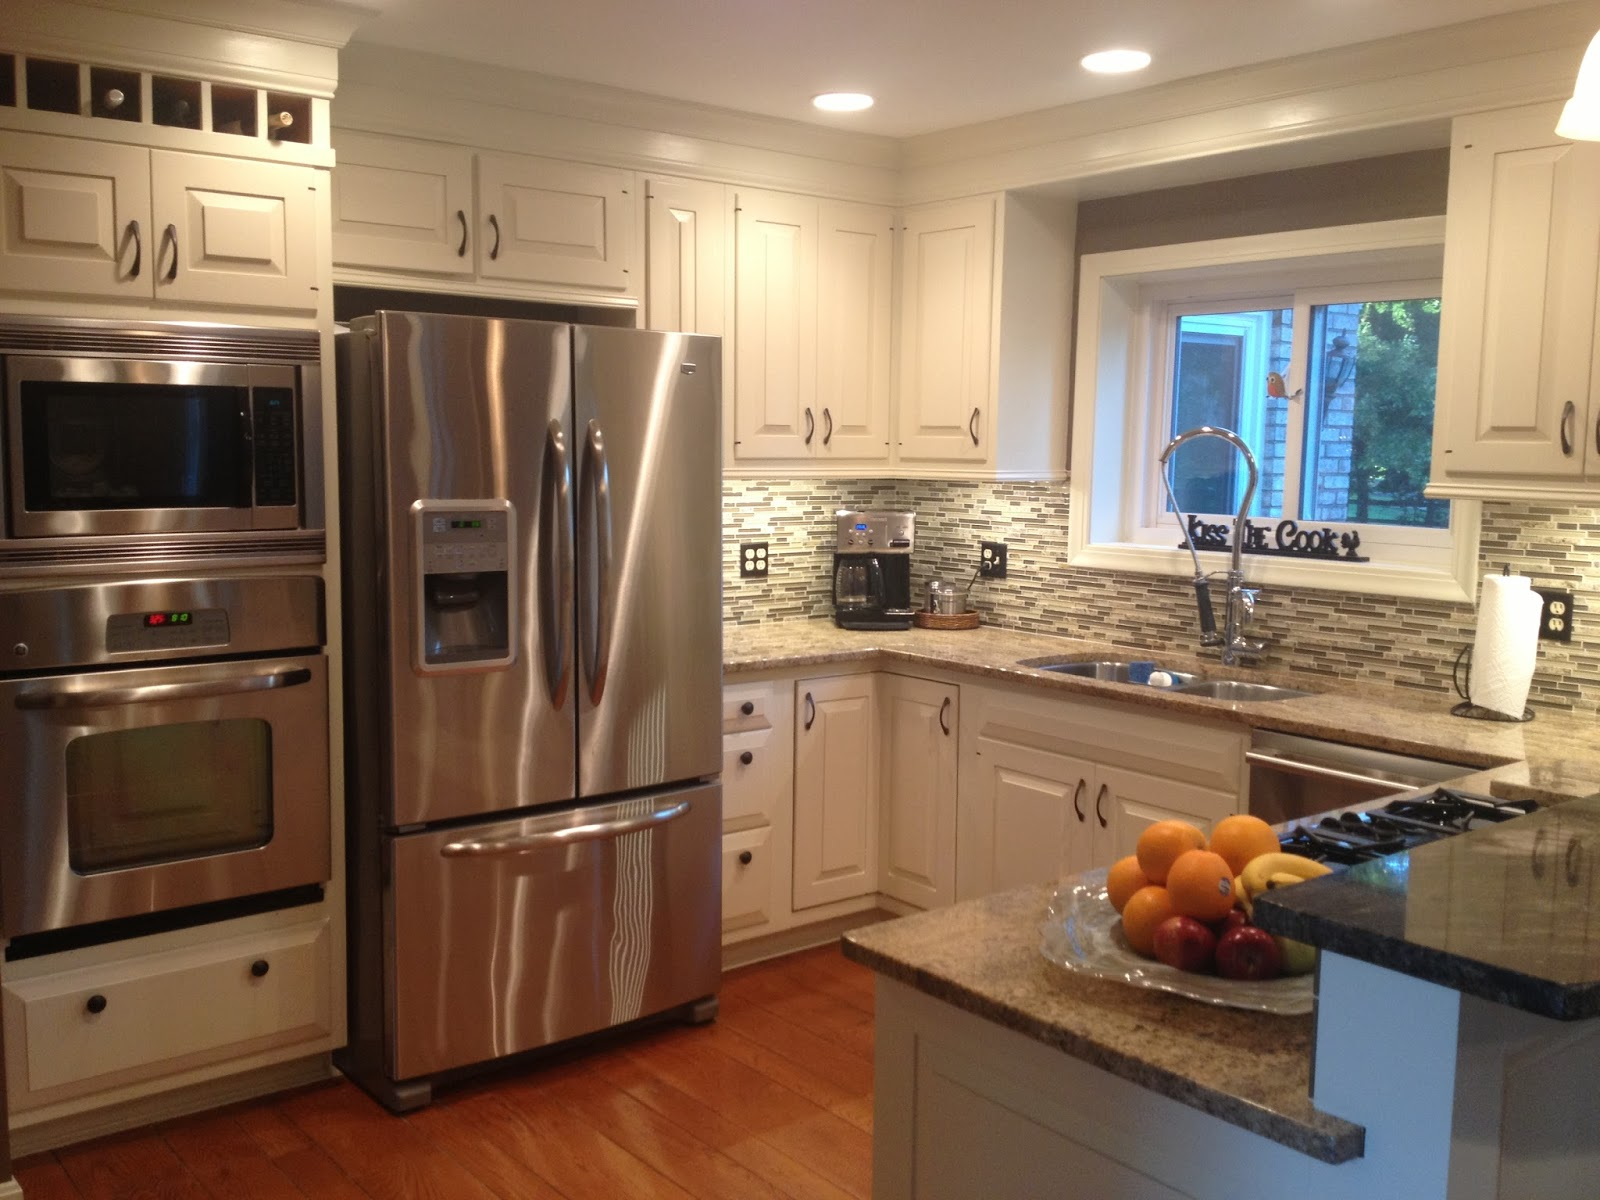 Four seasons style the new kitchen remodel on a budget for Kitchen remodel ideas pictures